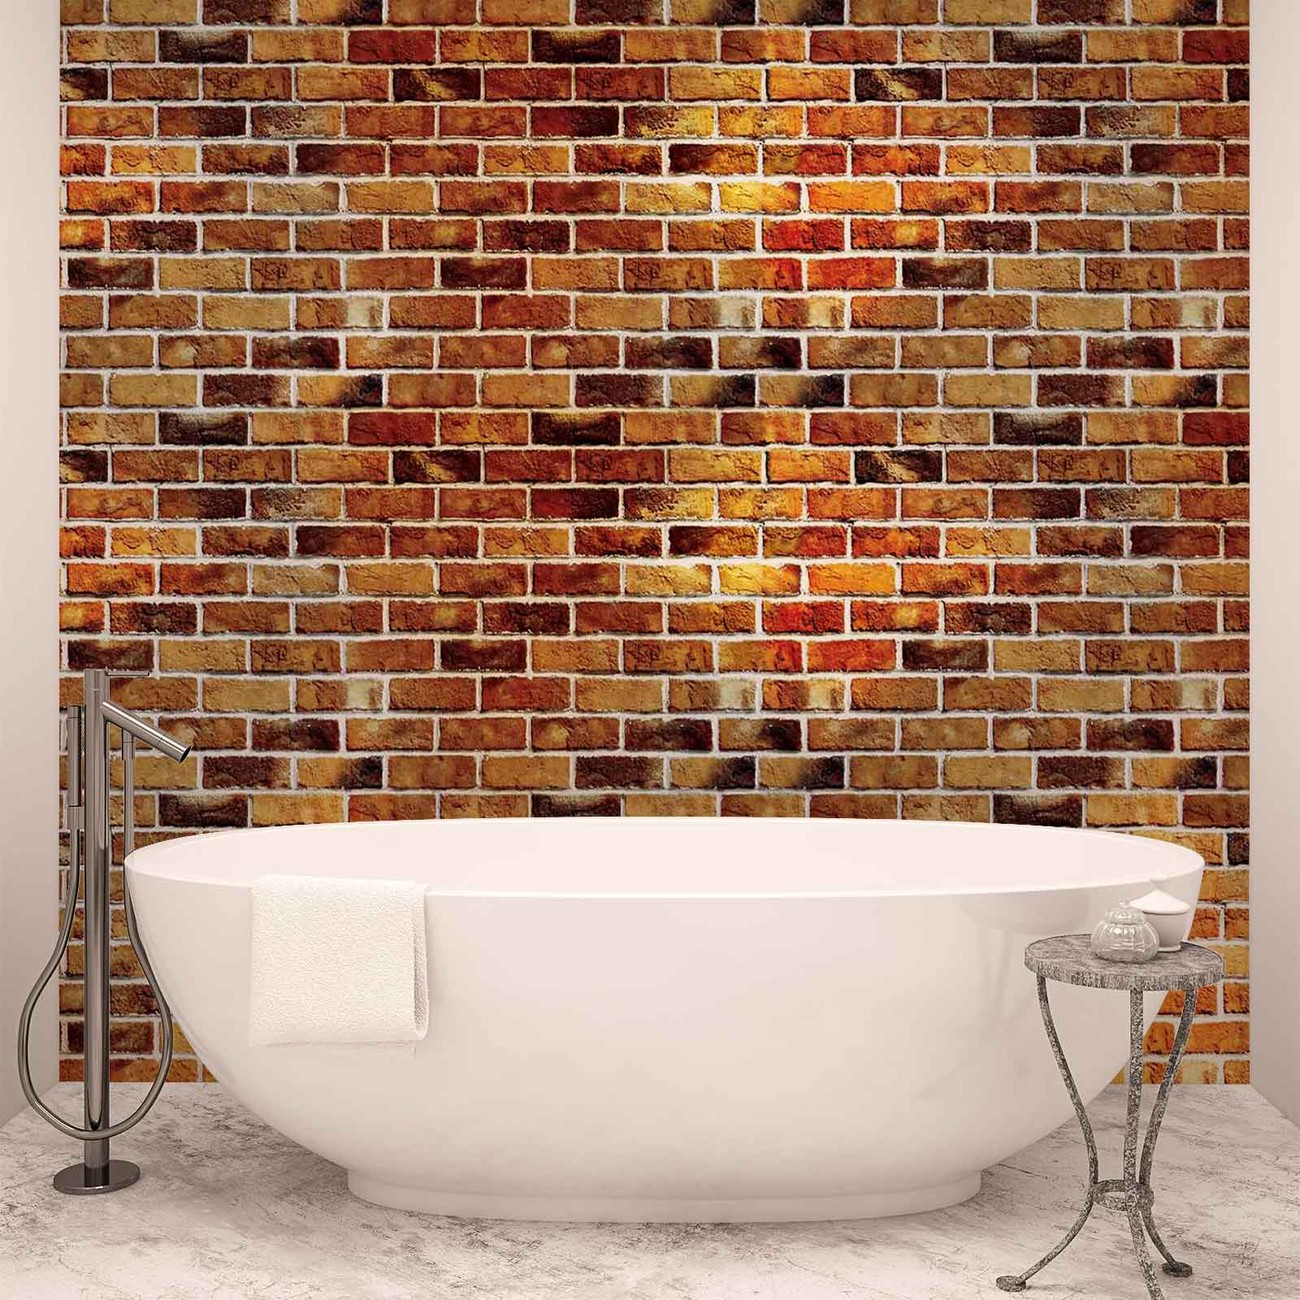 Brick wall wall paper mural buy at europosters for Brick wall mural